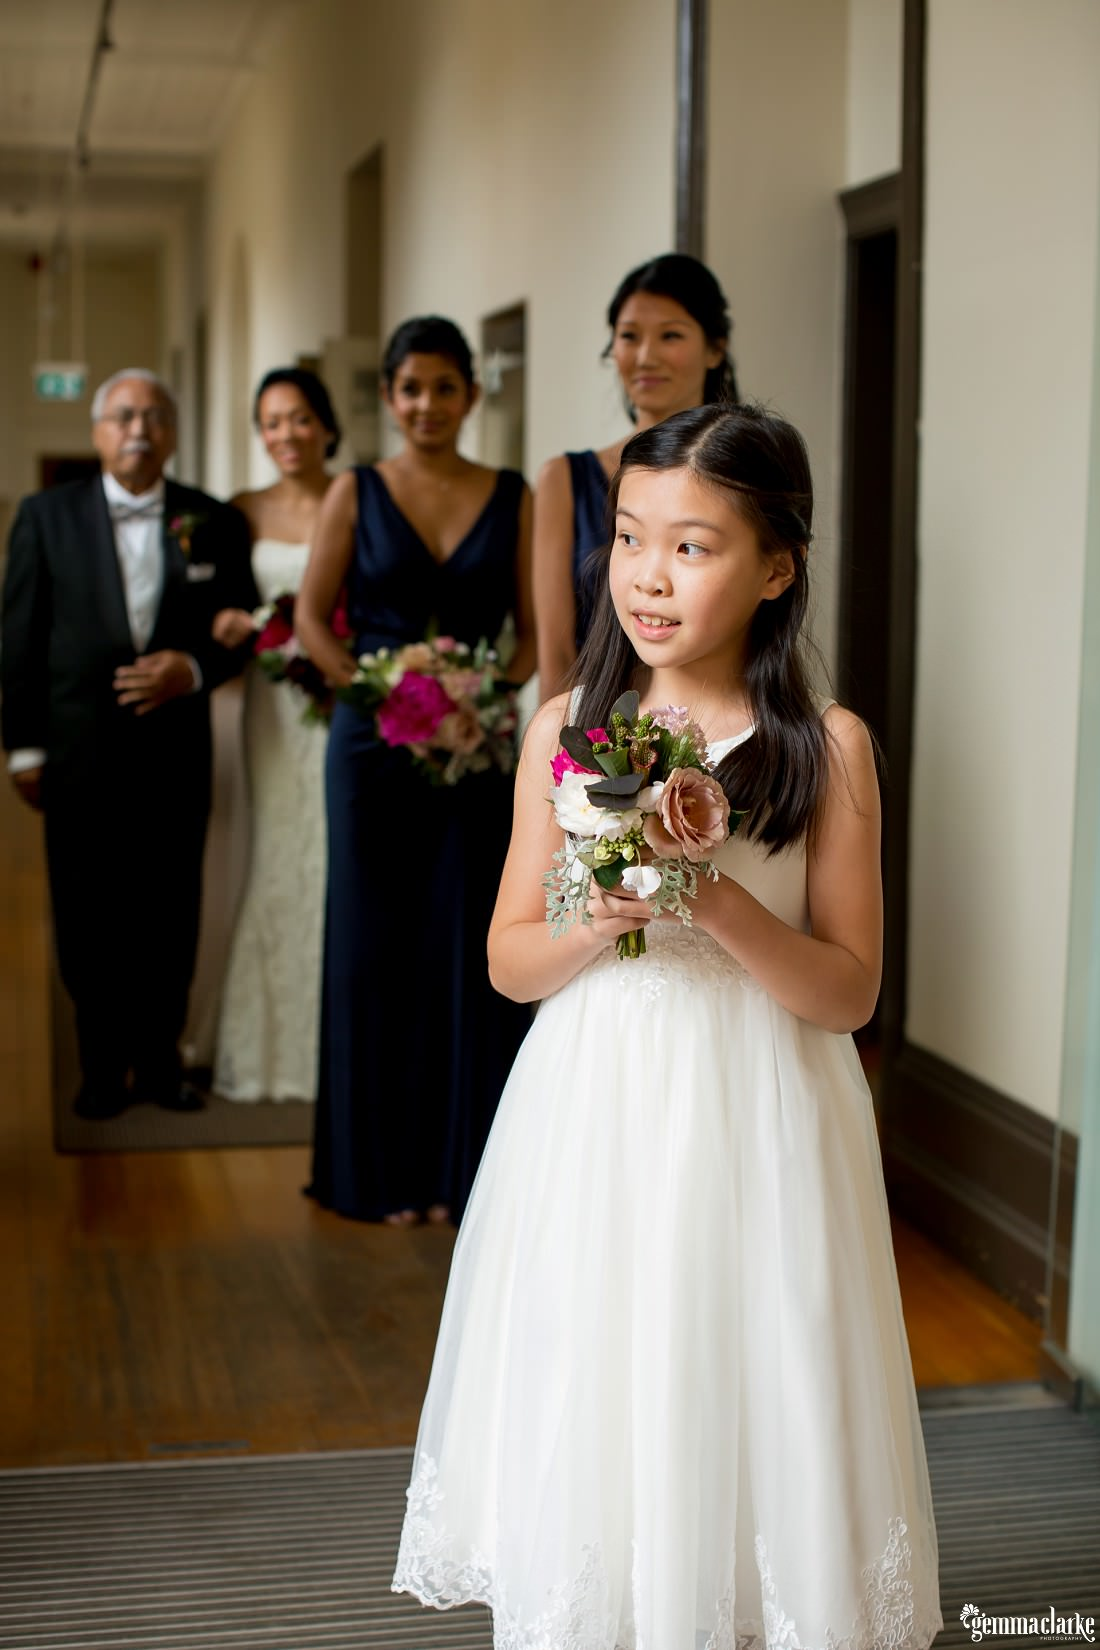 A flower girl peaks out to the ceremony as the bridesmaids and the bride and her father wait behind